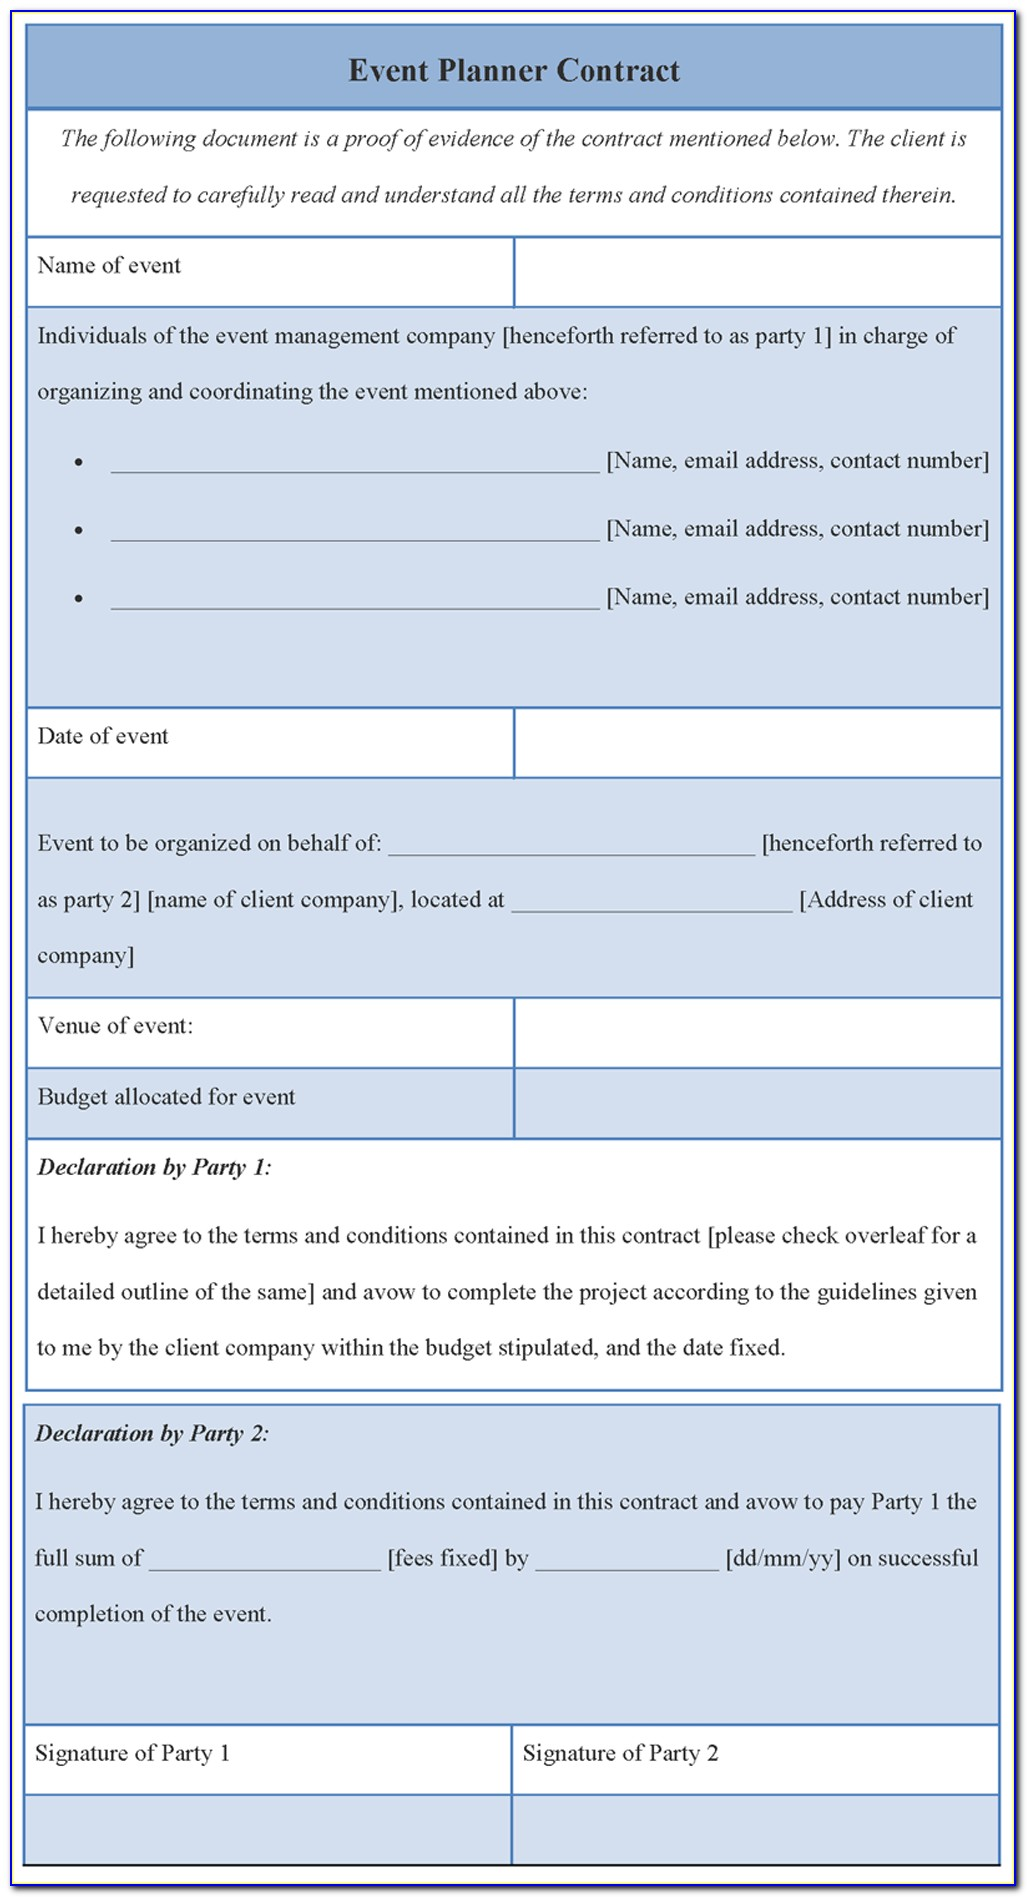 Event Planning Contract Template Word